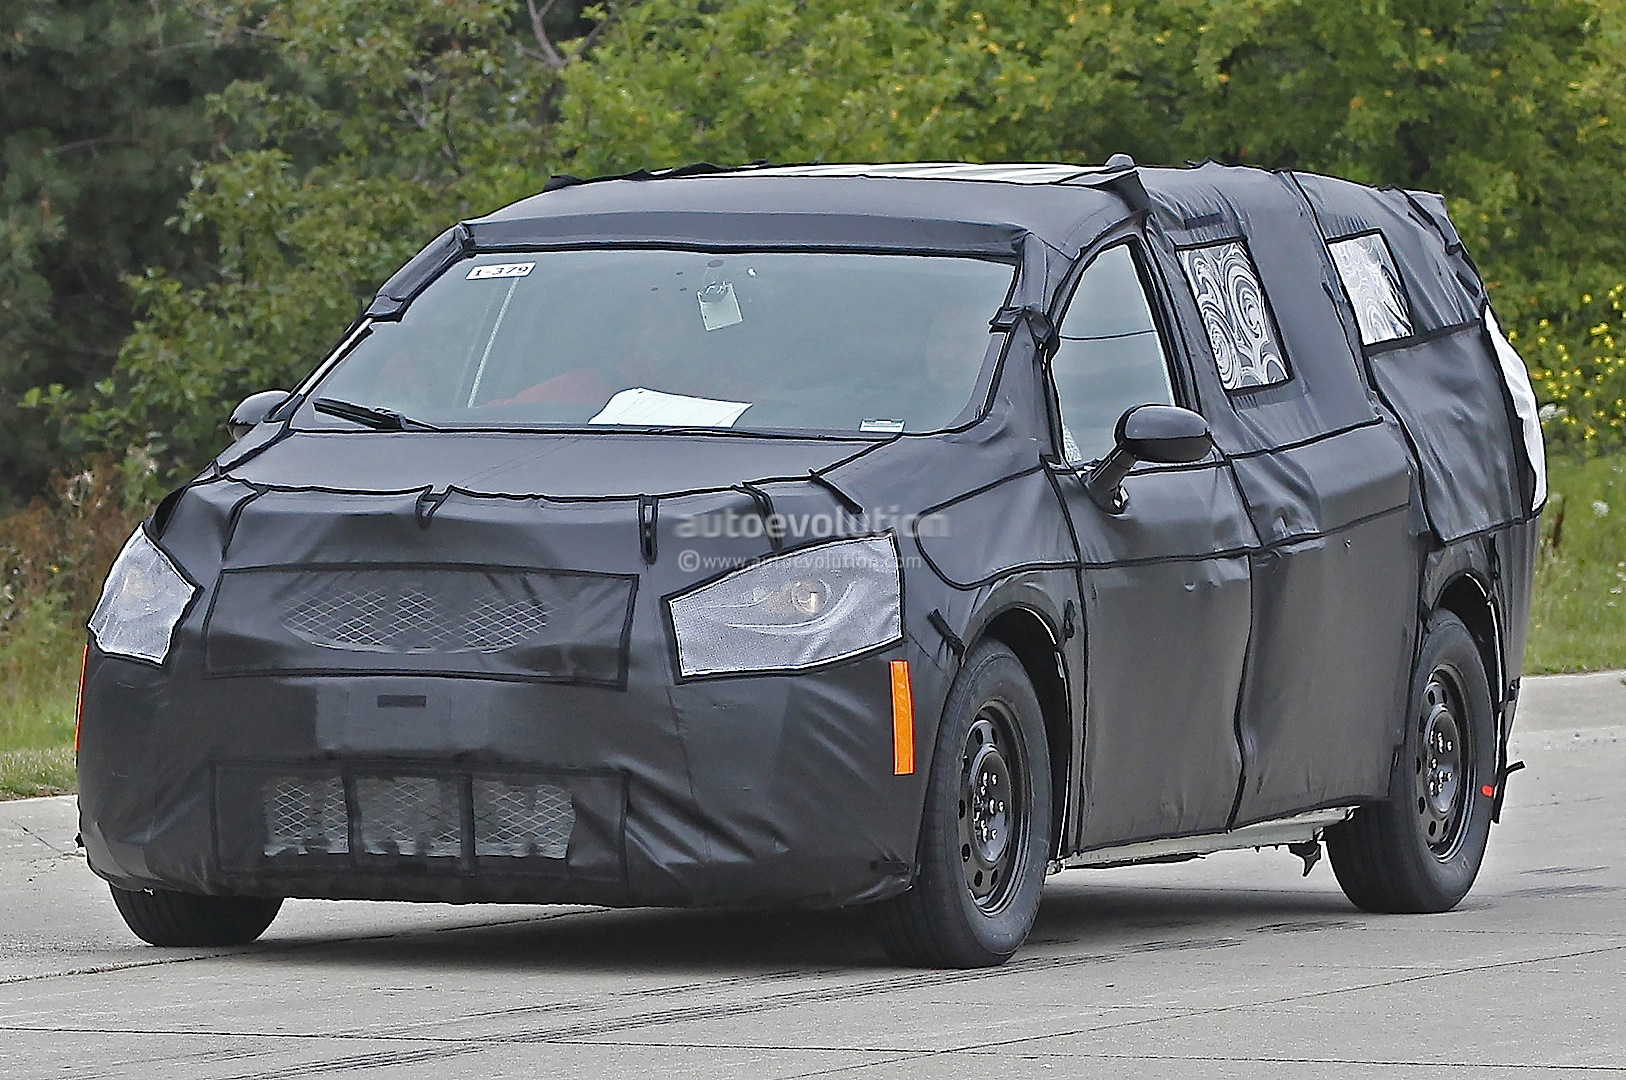 2017 chrysler town country spied up close and personal autoevolution. Black Bedroom Furniture Sets. Home Design Ideas